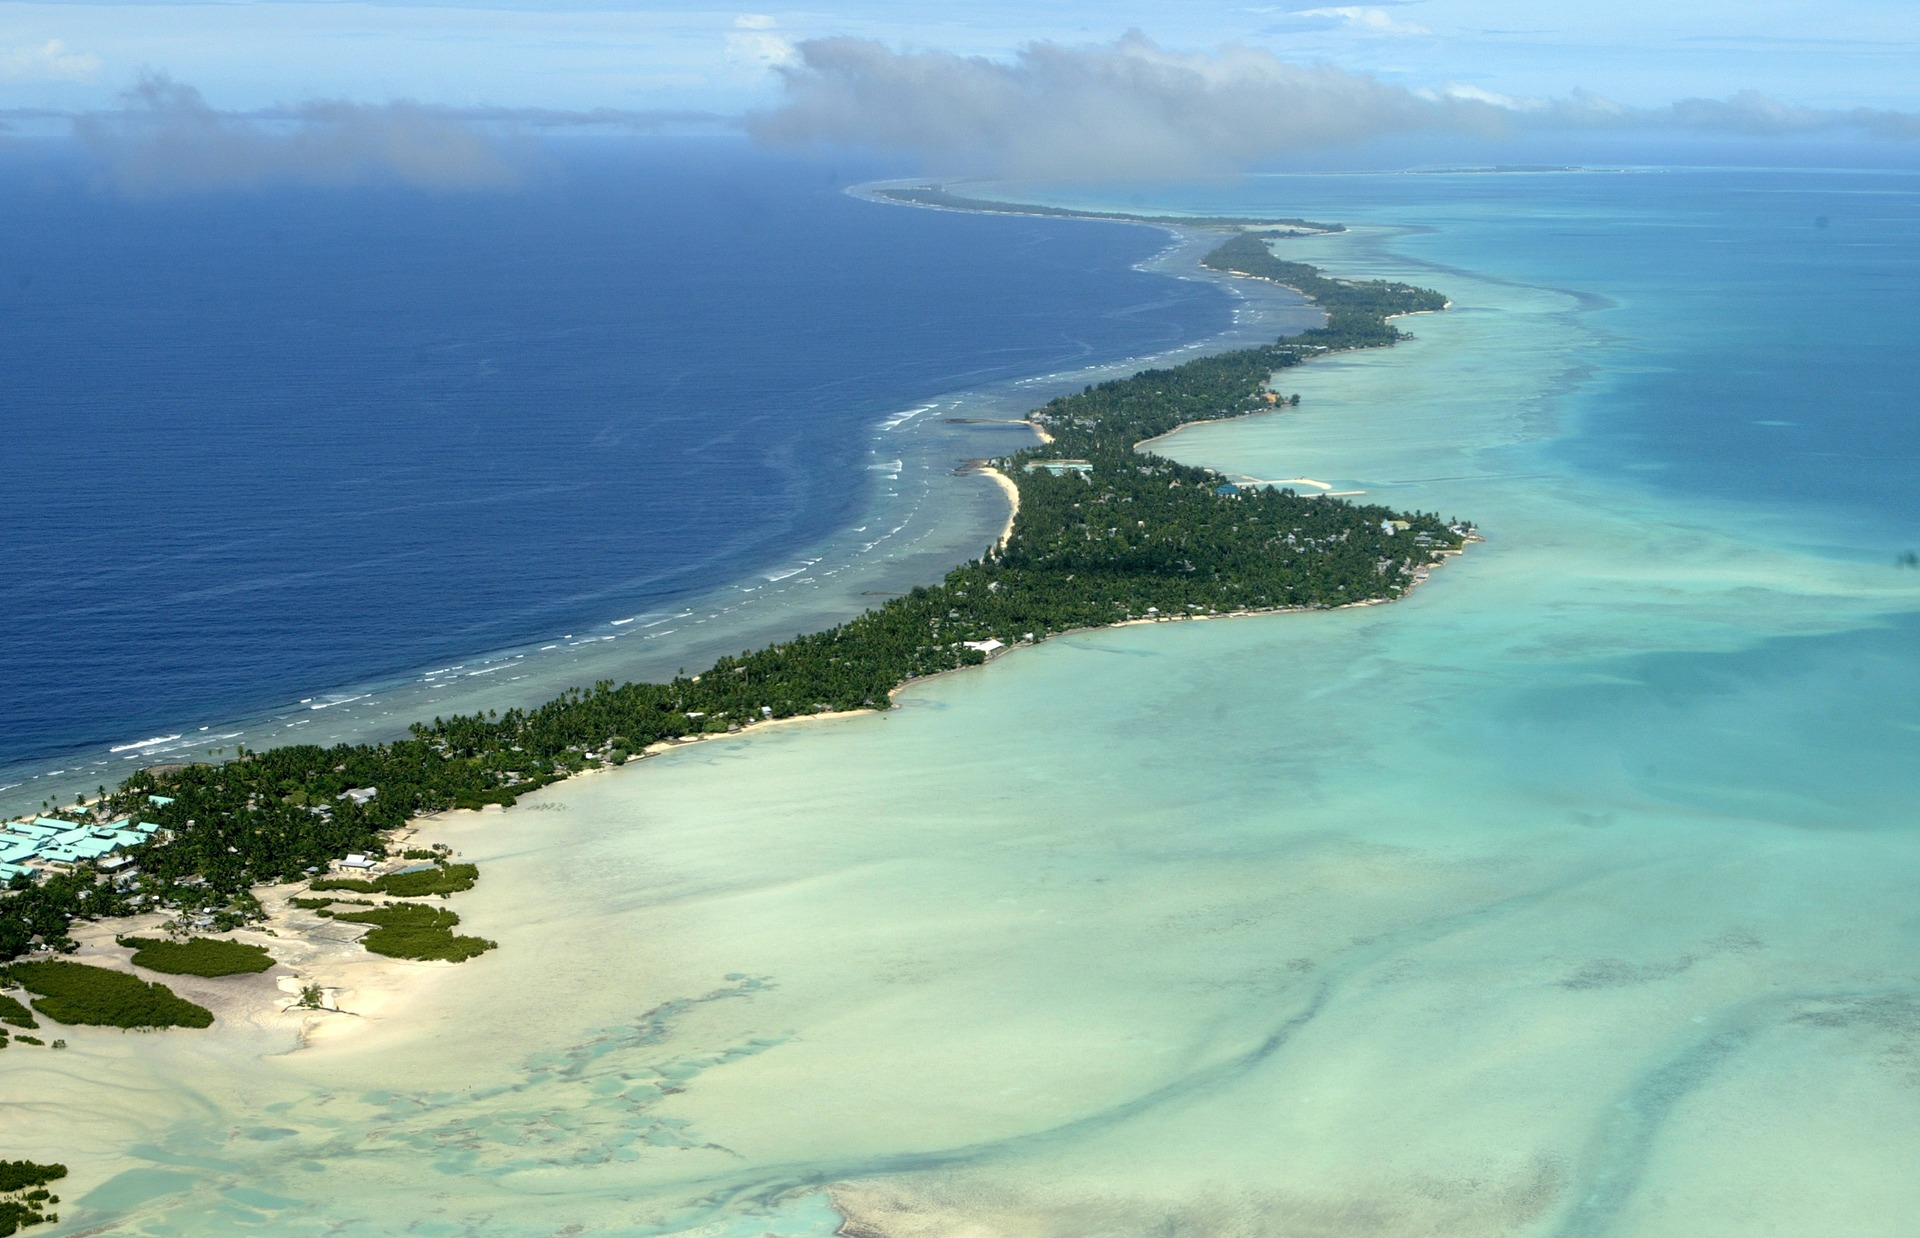 China's terrifying aim: Pacific Islands targeted